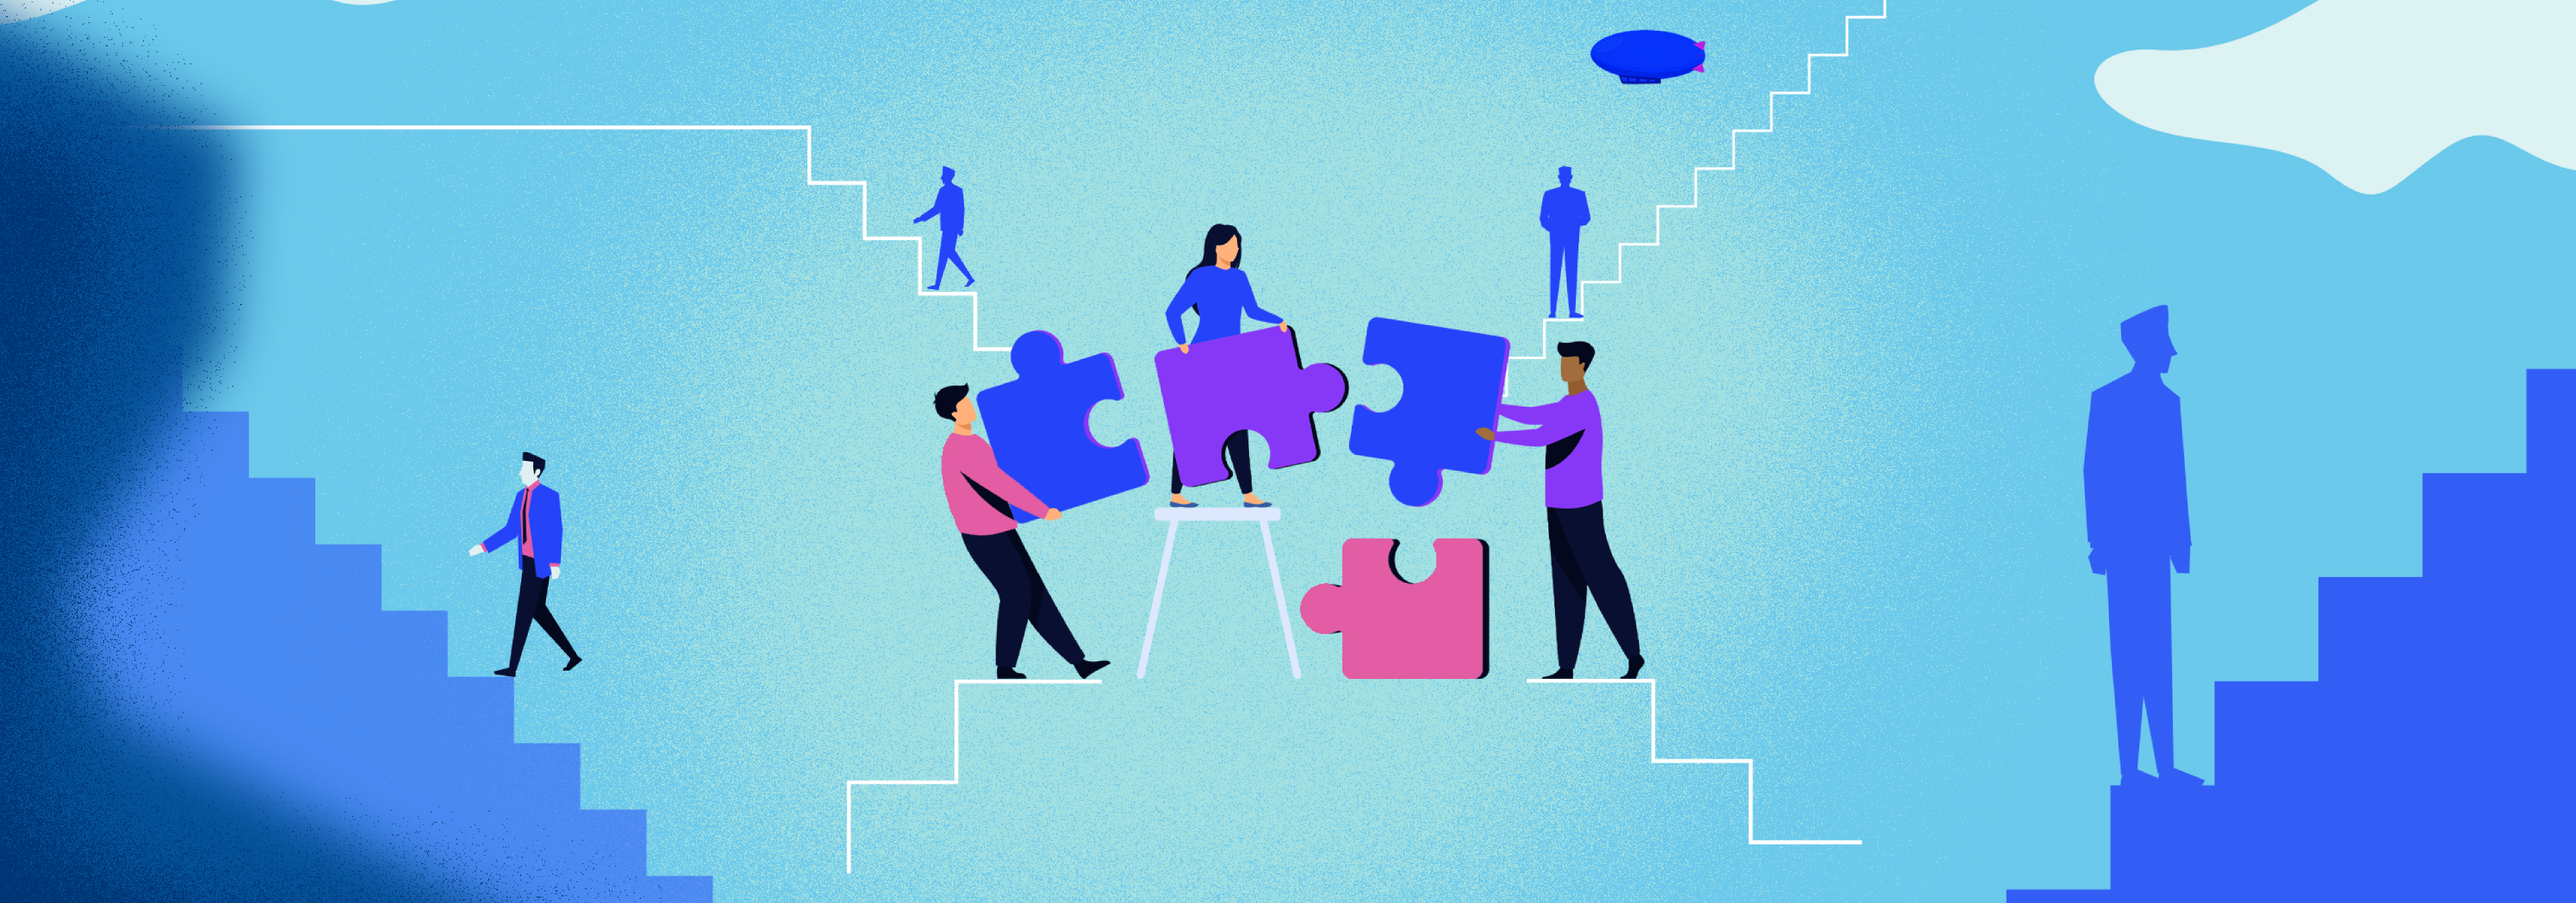 Connection or Information? How to Maximize the Success of Remote Onboarding